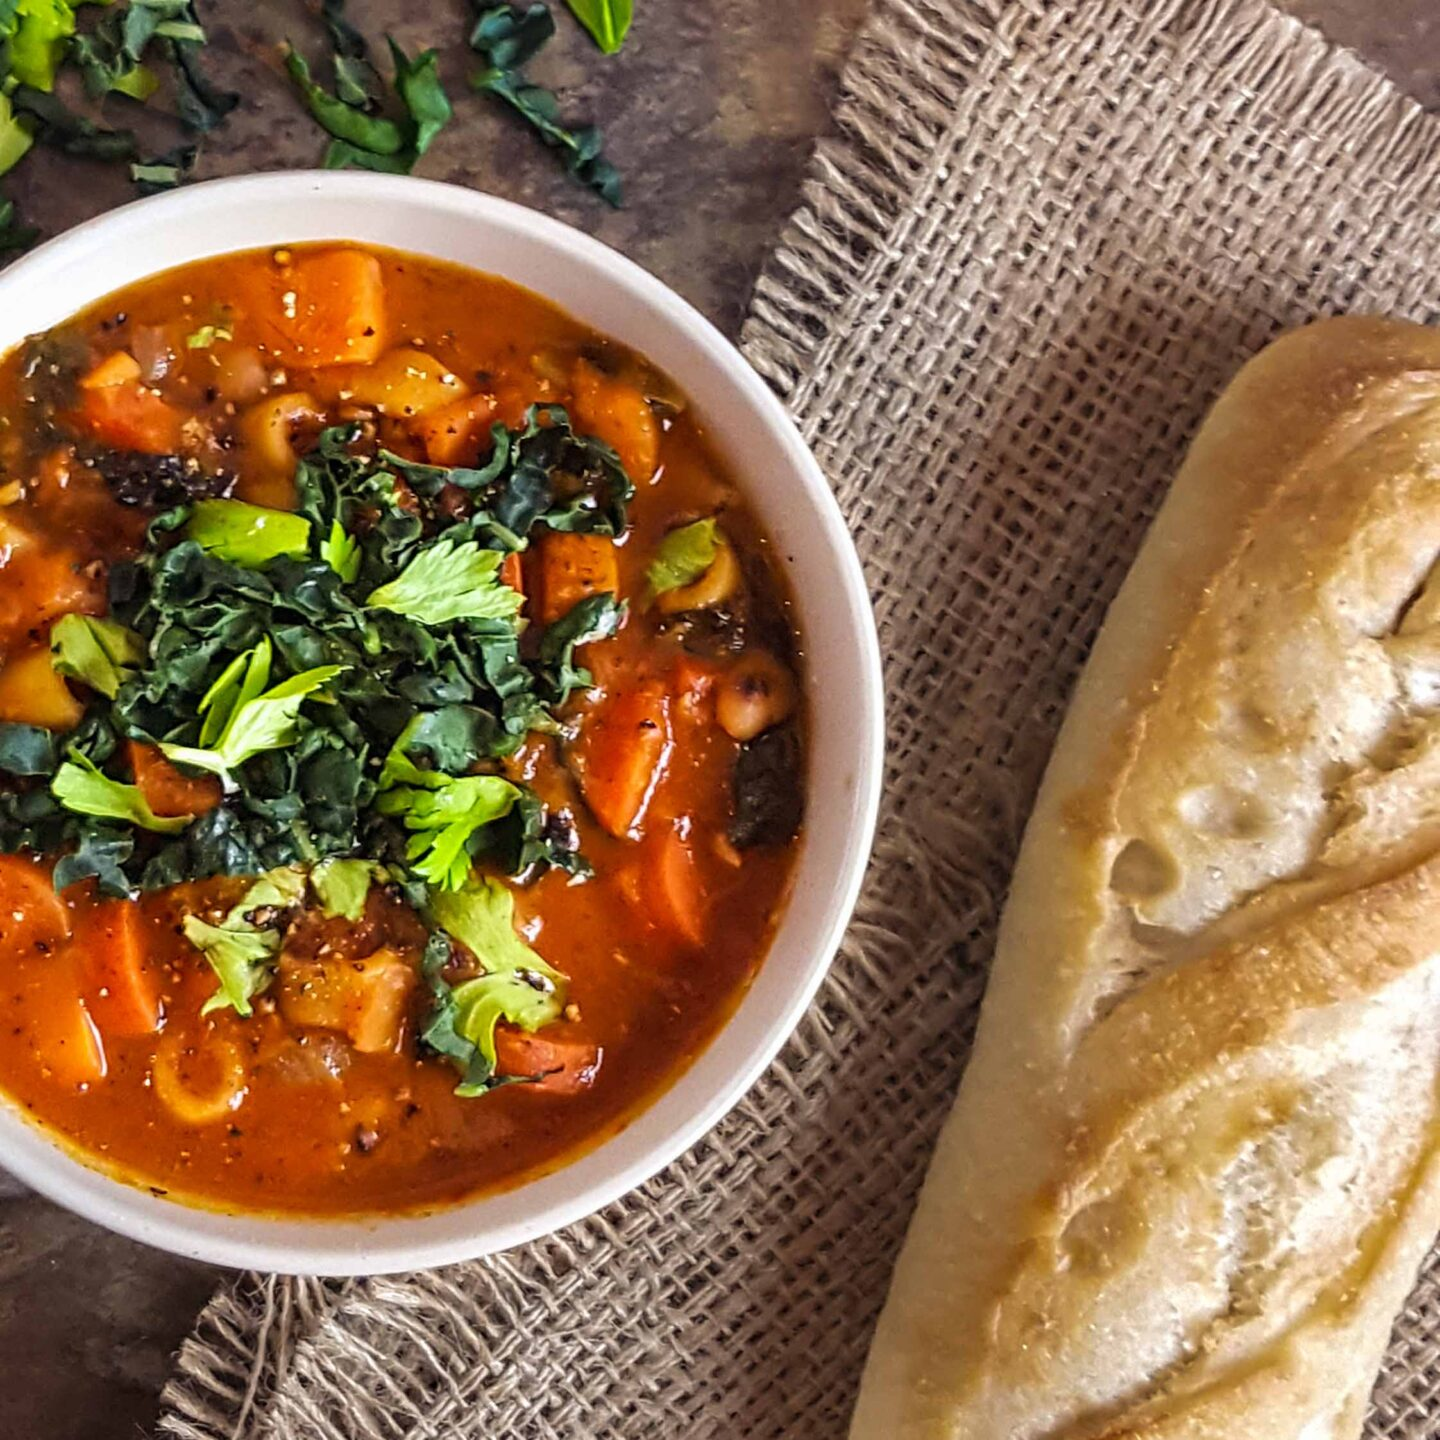 A bowl of minestrone and a side of bread